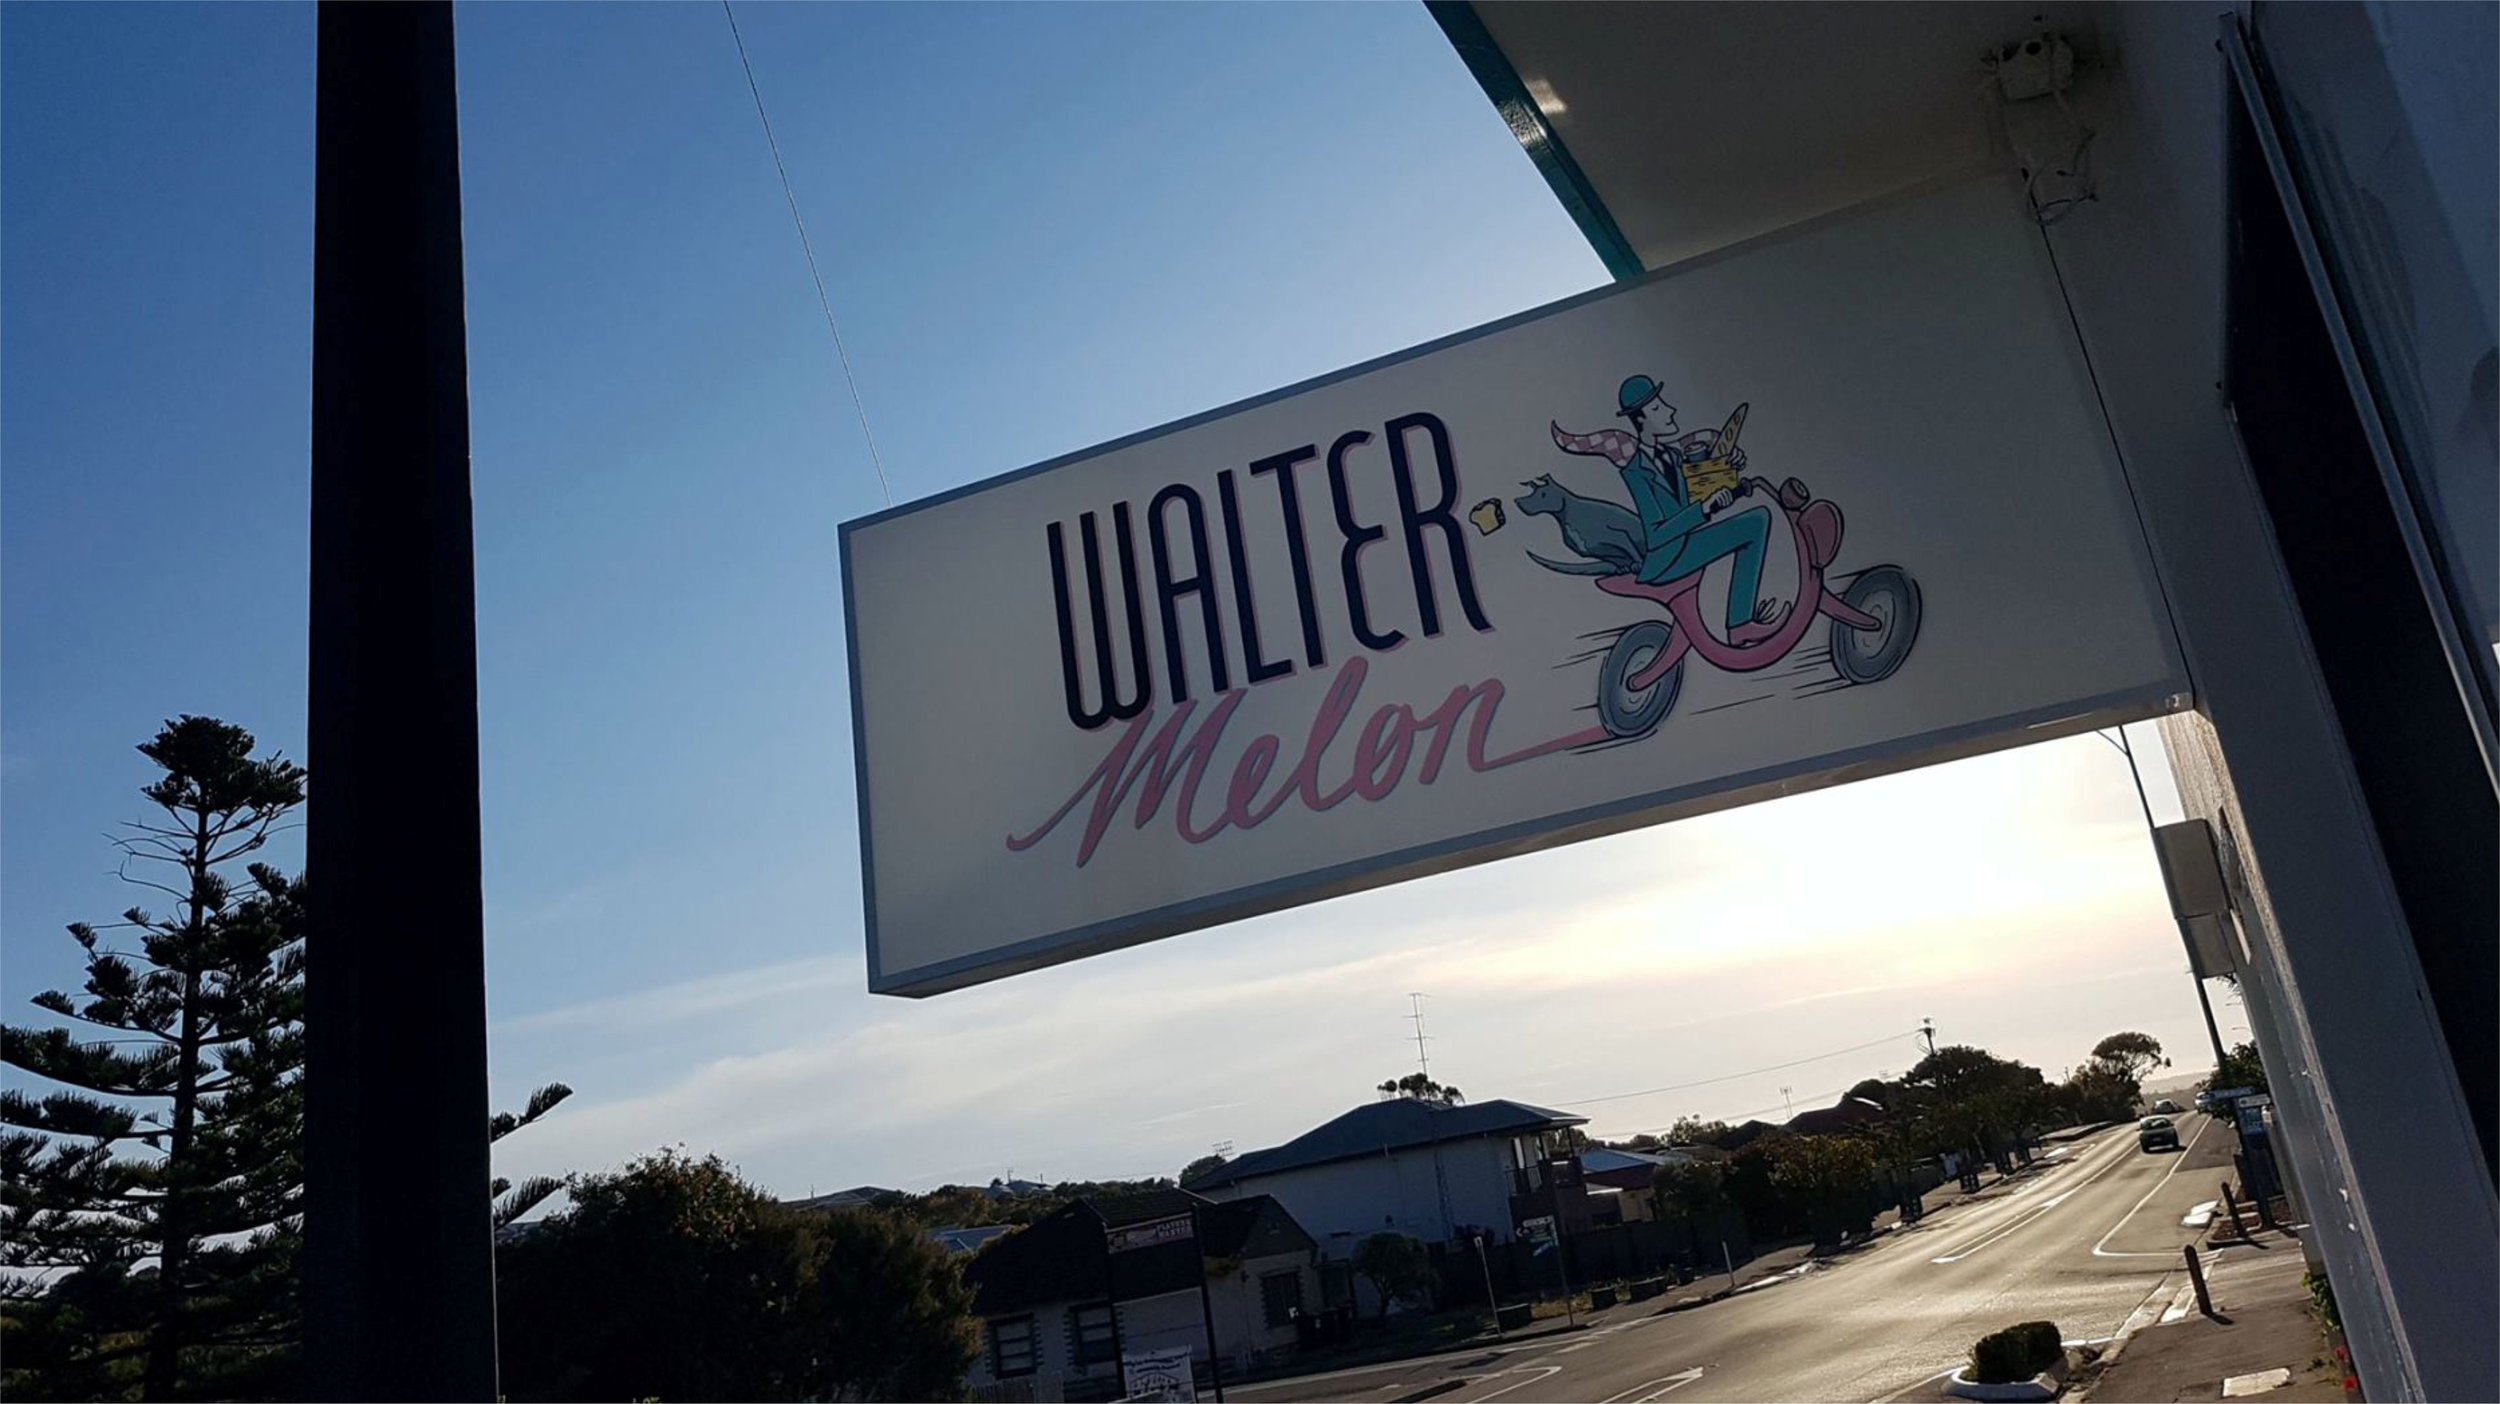 Walter Melon - Sign Colour - Signage Adelaide - Port Elliot - Adelaide Signage - South Australia - Fleurieu Signs - Illuminated lightbox - Lightbox.jpg